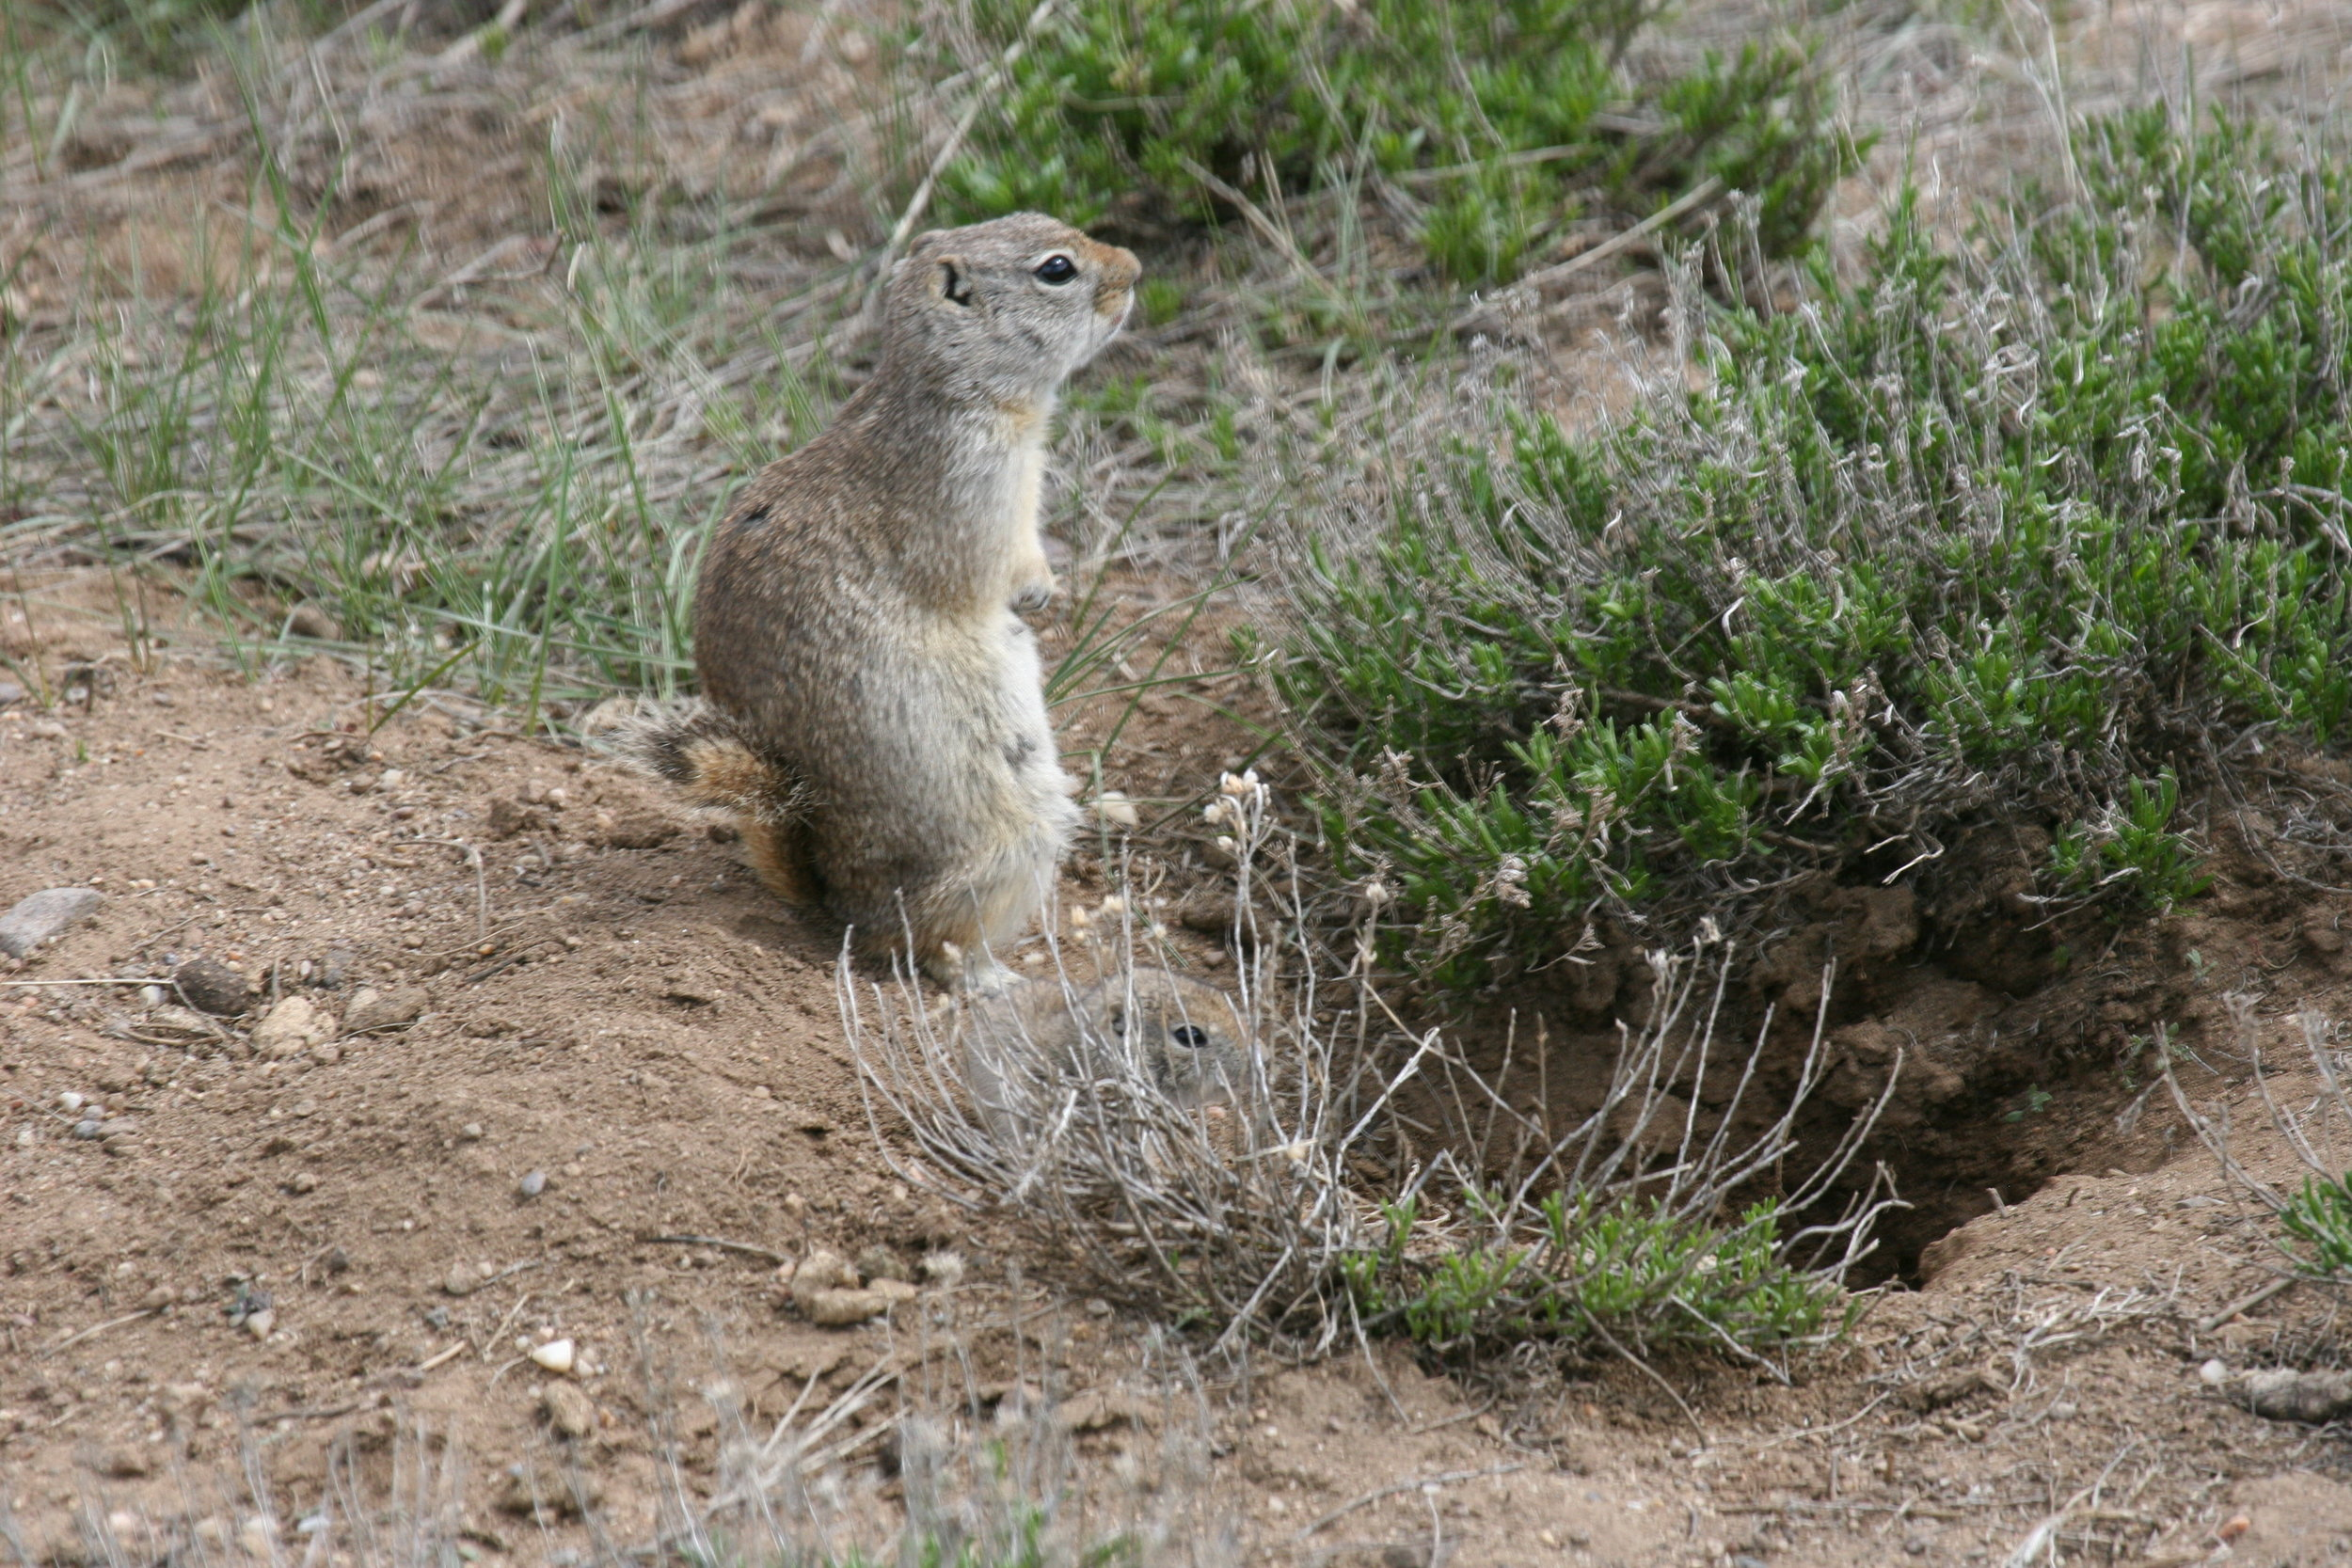 The relatively longer black-tipped tail of the Wyoming ground squirrel can be used to differentiate it from the white-tailed prairie dog.  ©John Hoogland 2011